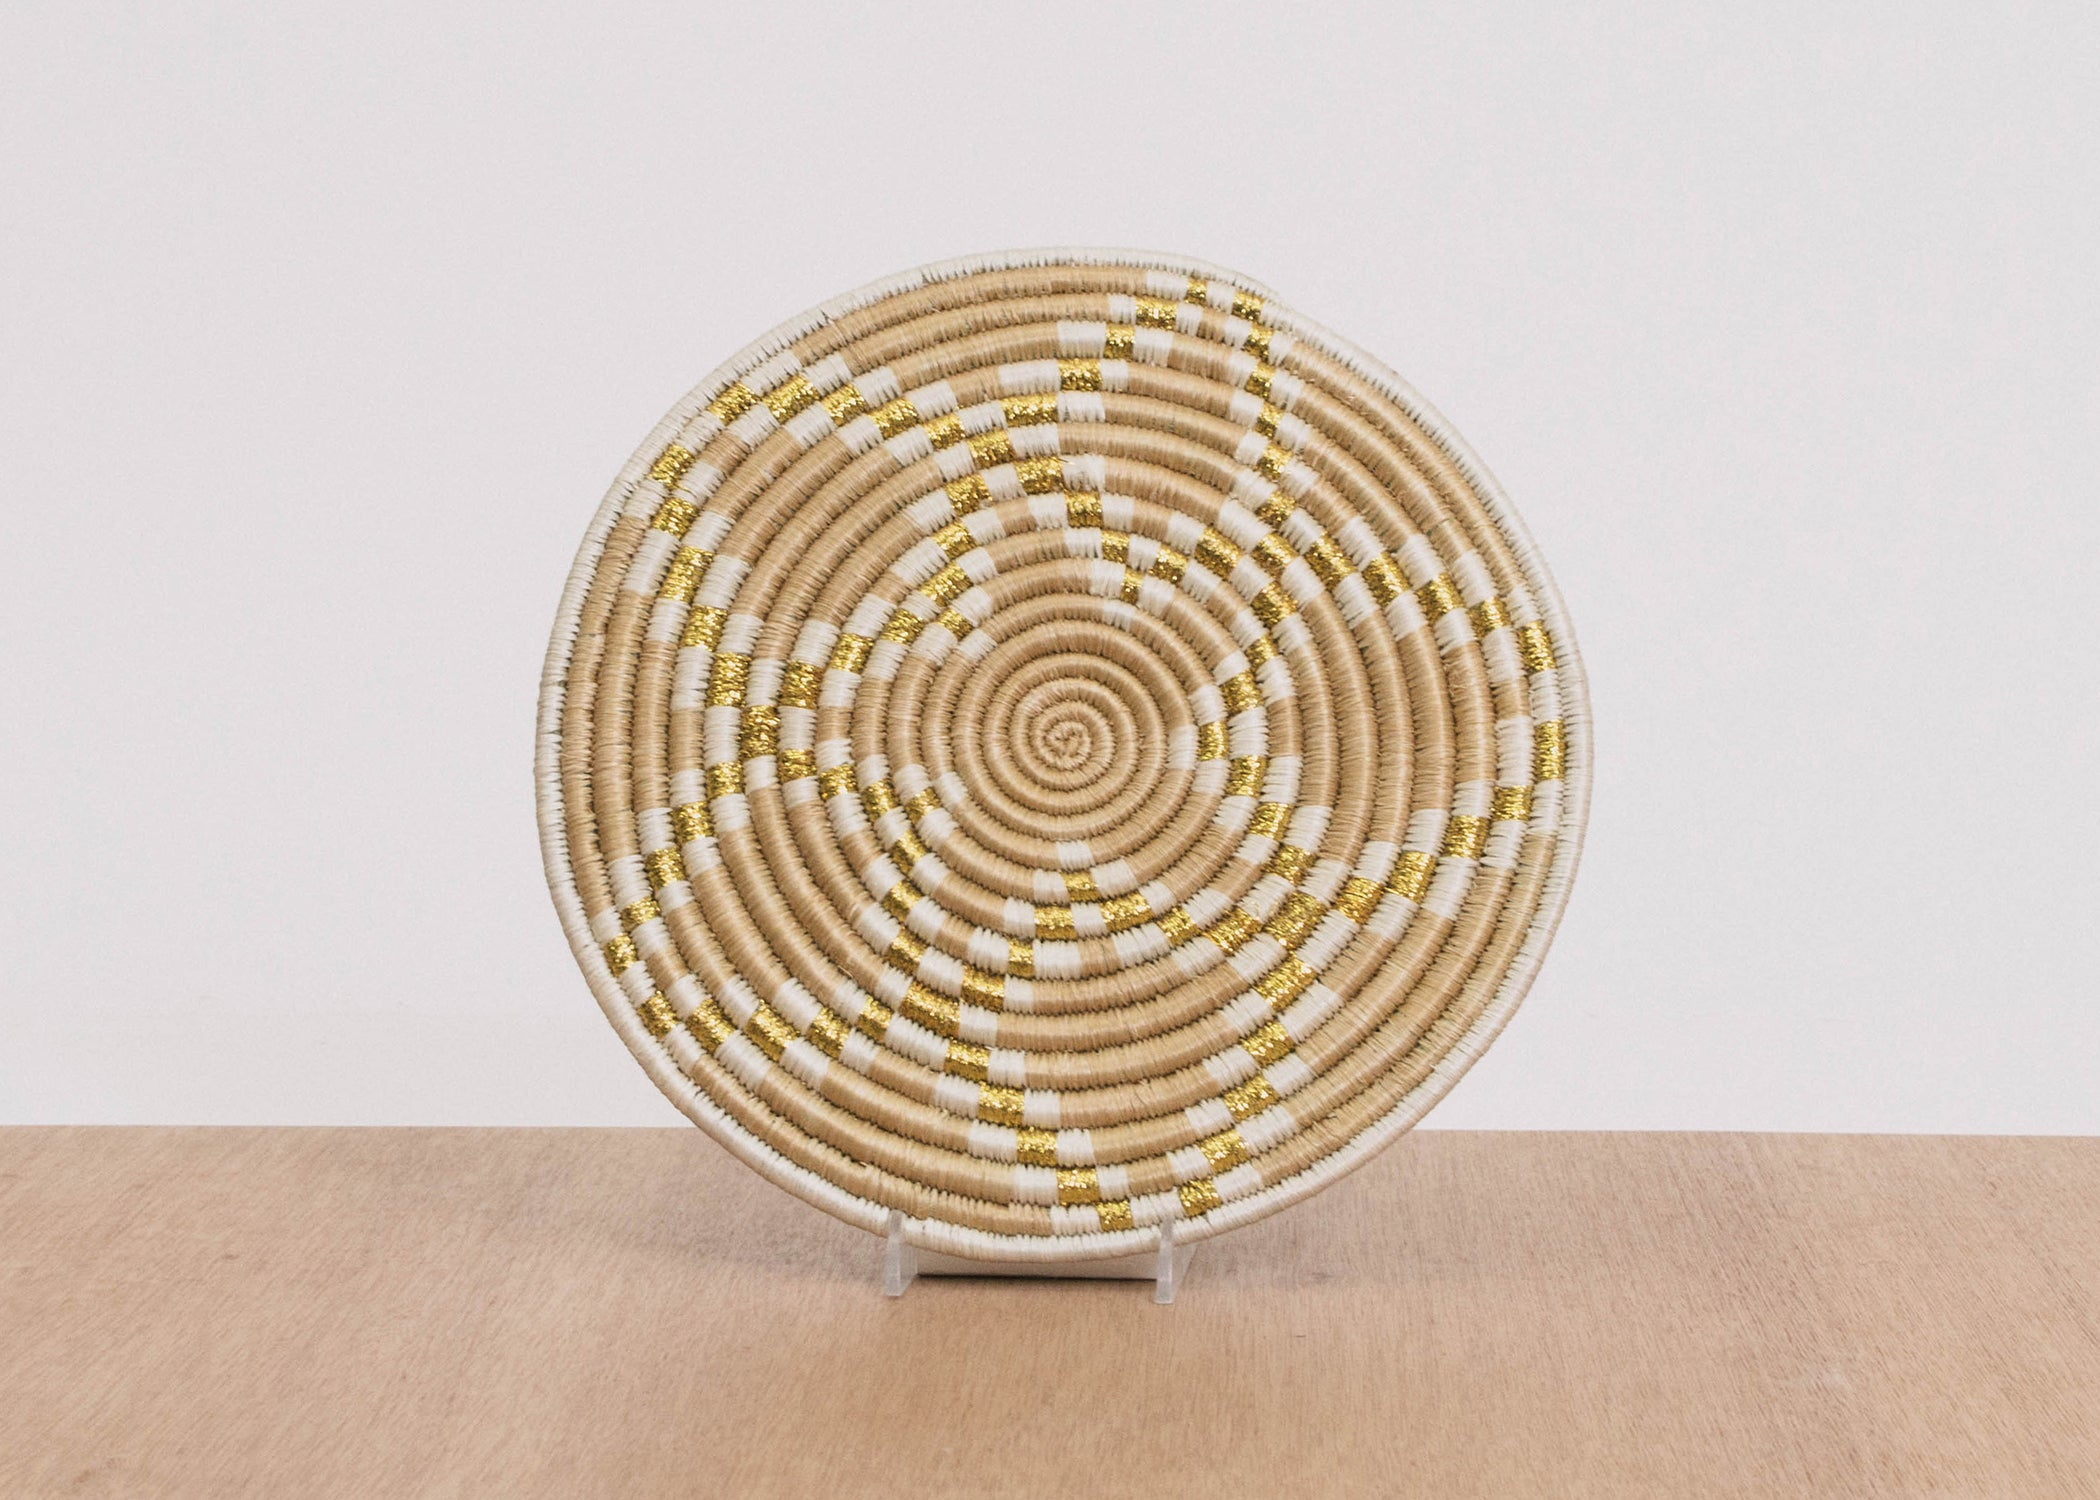 Small Metallic Soft Gold Virunga Trivet - KAZI - Artisan made high quality home decor and wall art